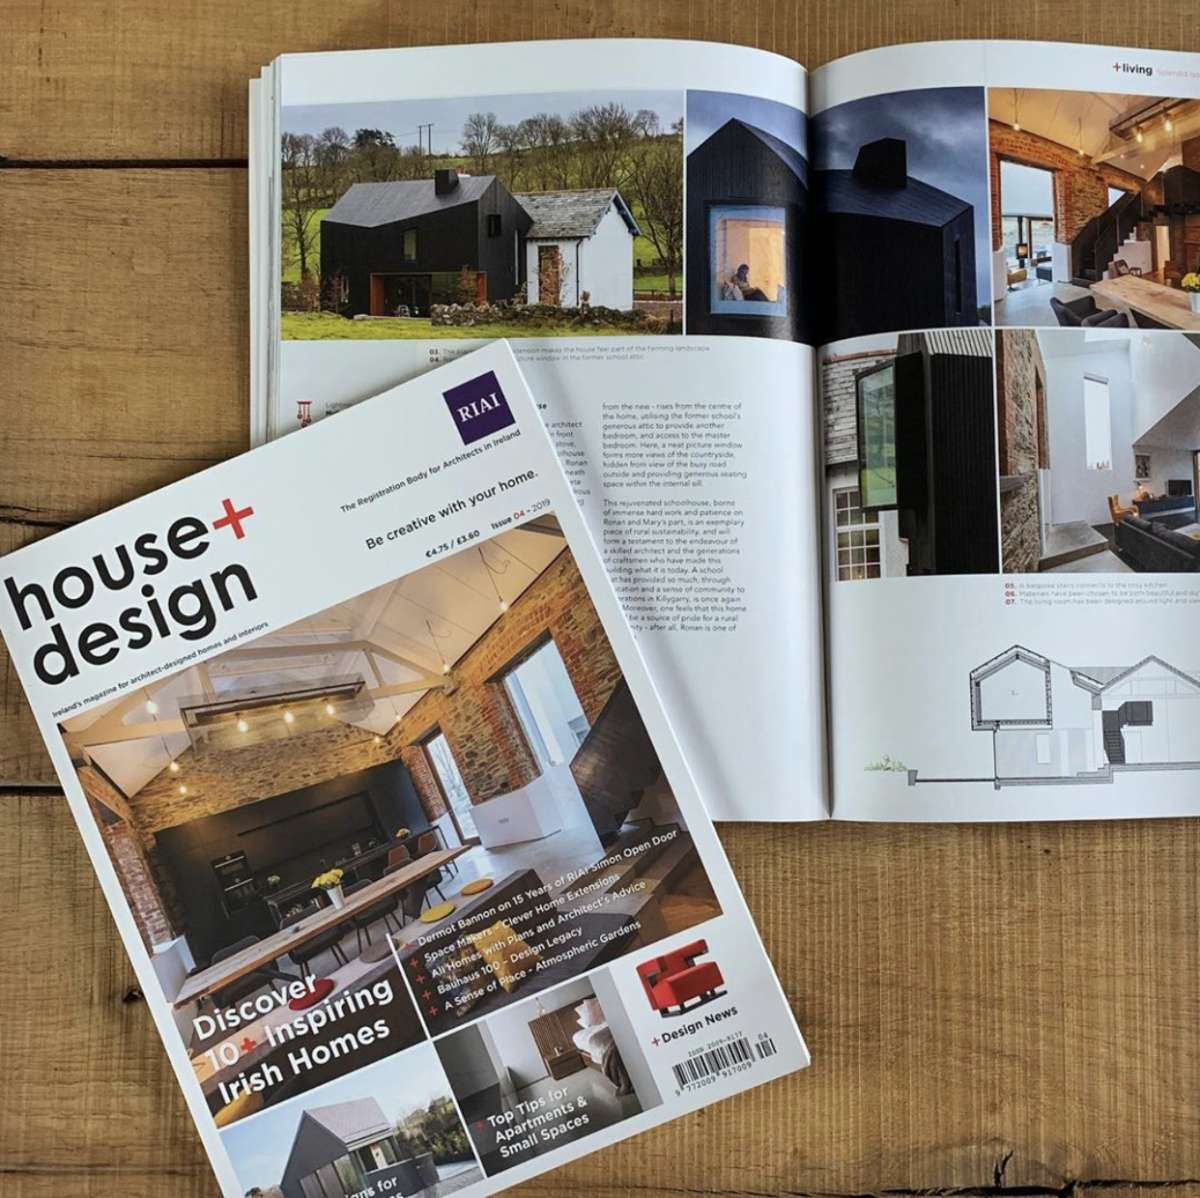 RIAI House + Design Magazine